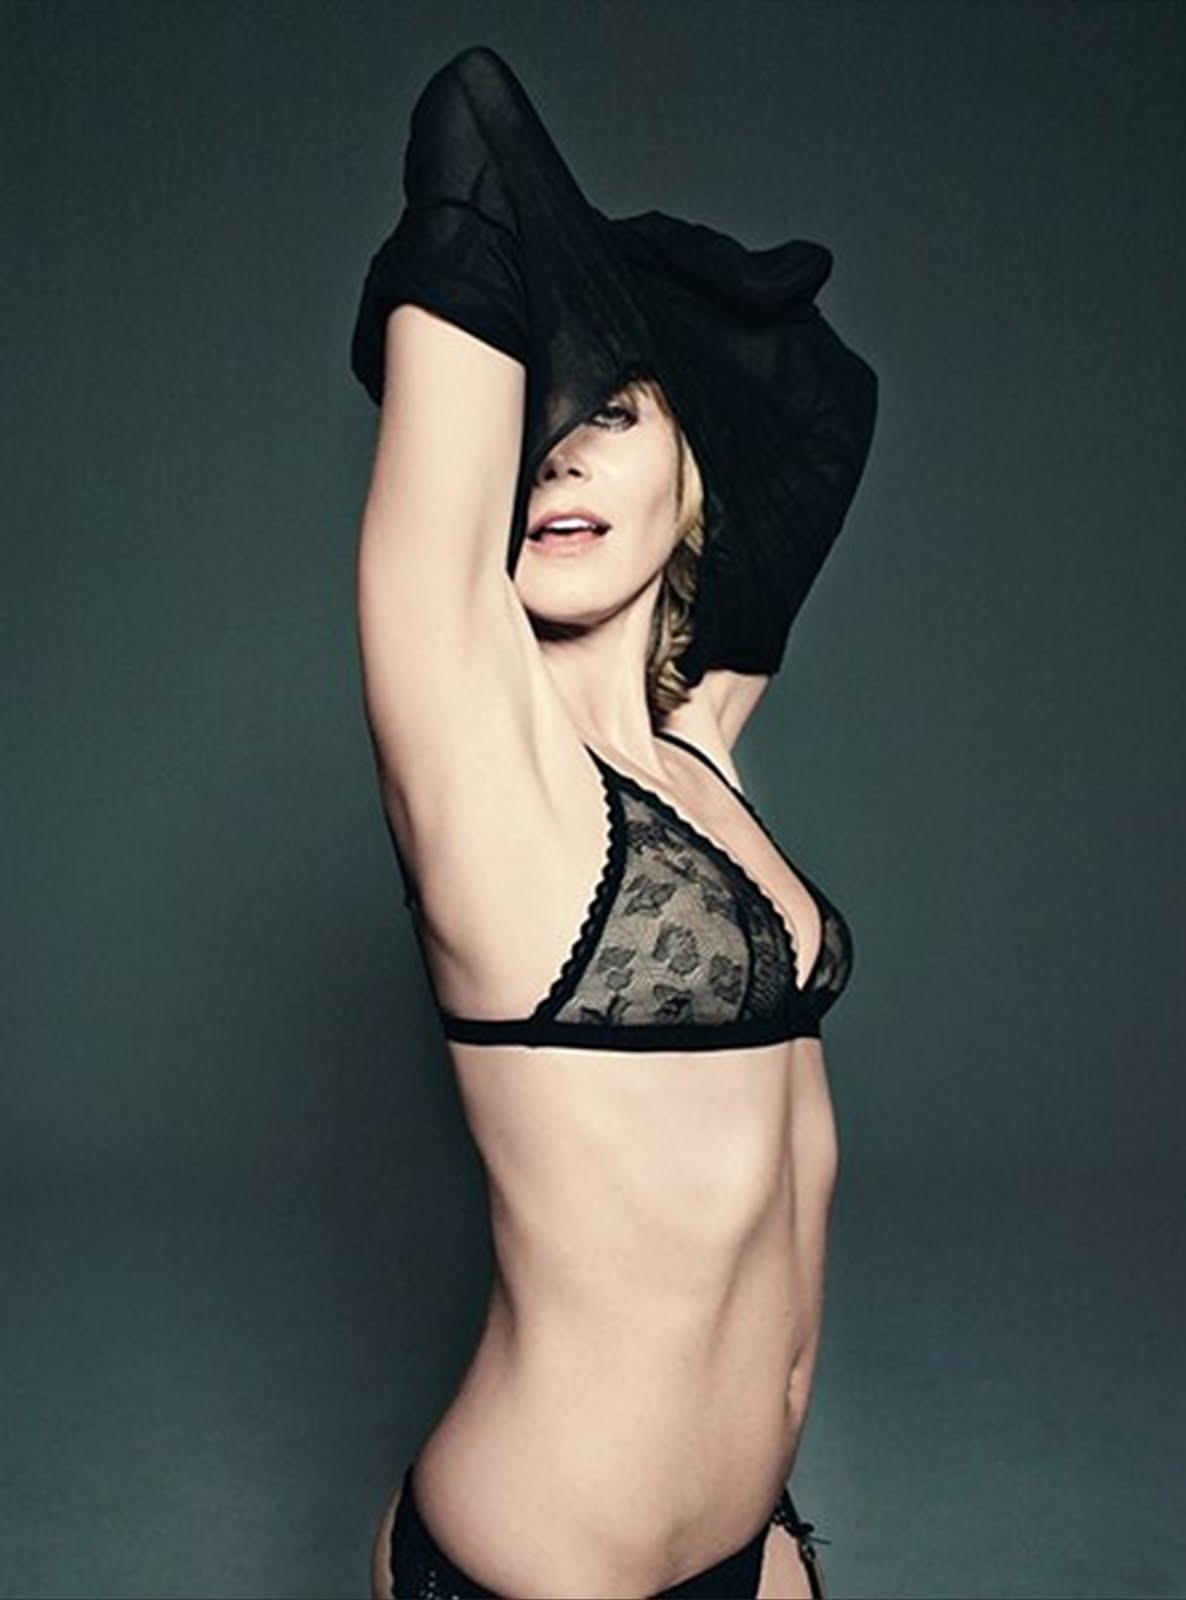 http://1.bp.blogspot.com/_8oDQ4L3GuN8/TBLcBz-9lzI/AAAAAAAADSM/yzNR8NPINKs/s1600/Heidi_Klum_takes_of_cloths_for_GQ_Magazine.jpg